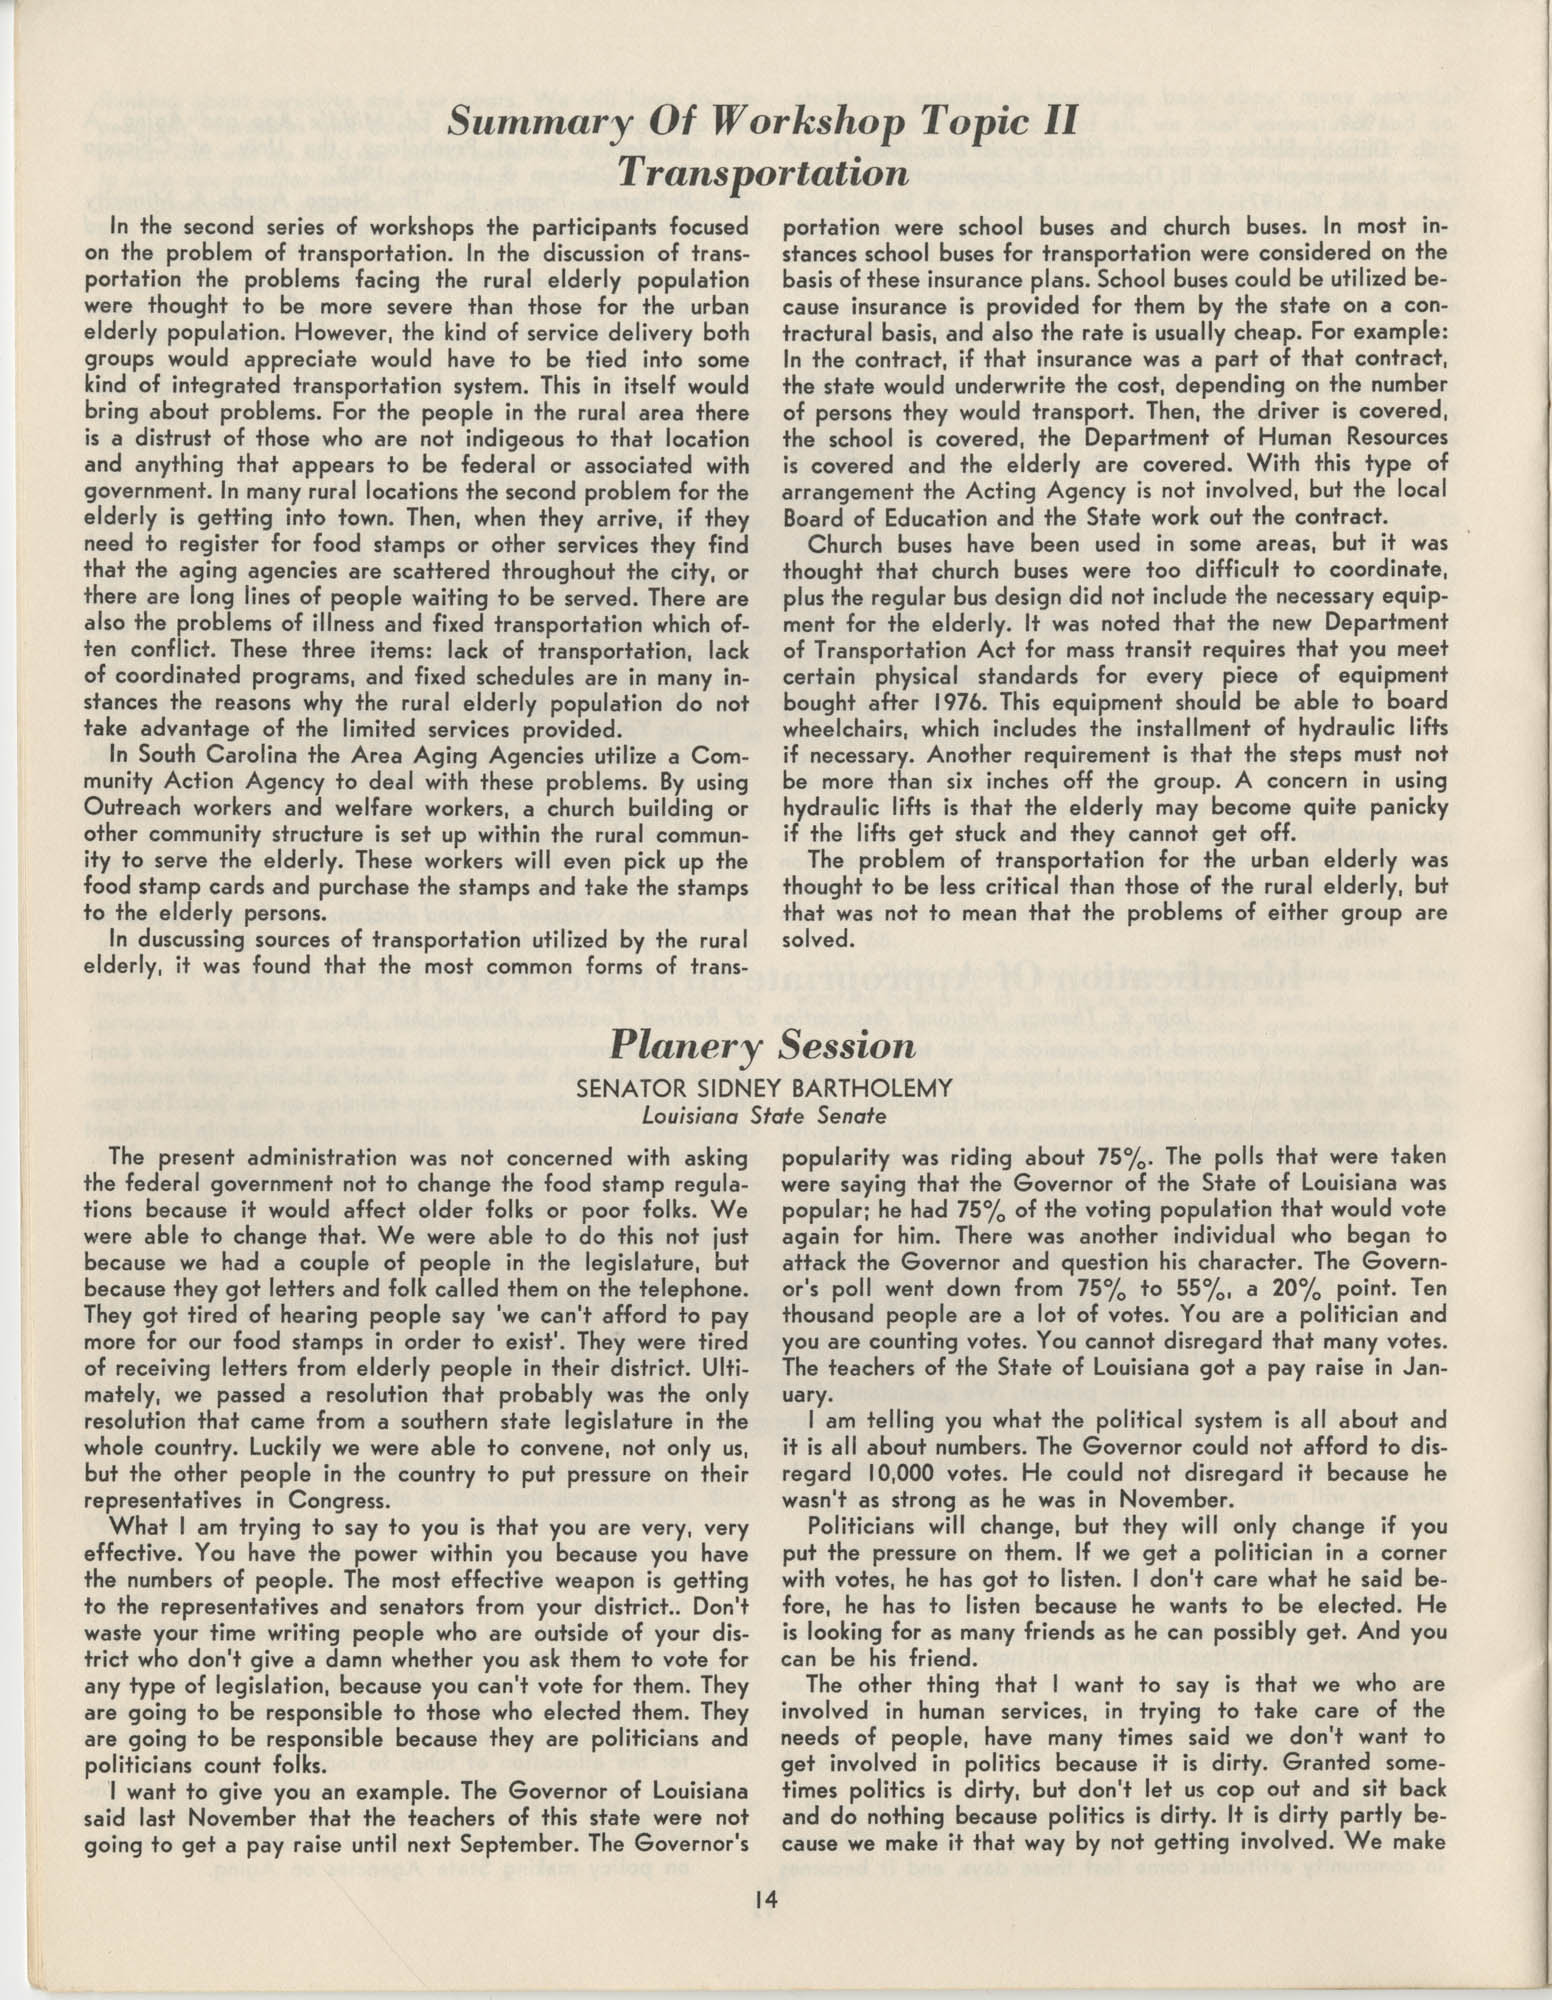 Black Educators Council for Human Services Conference on Aging, March 1975, Page 14